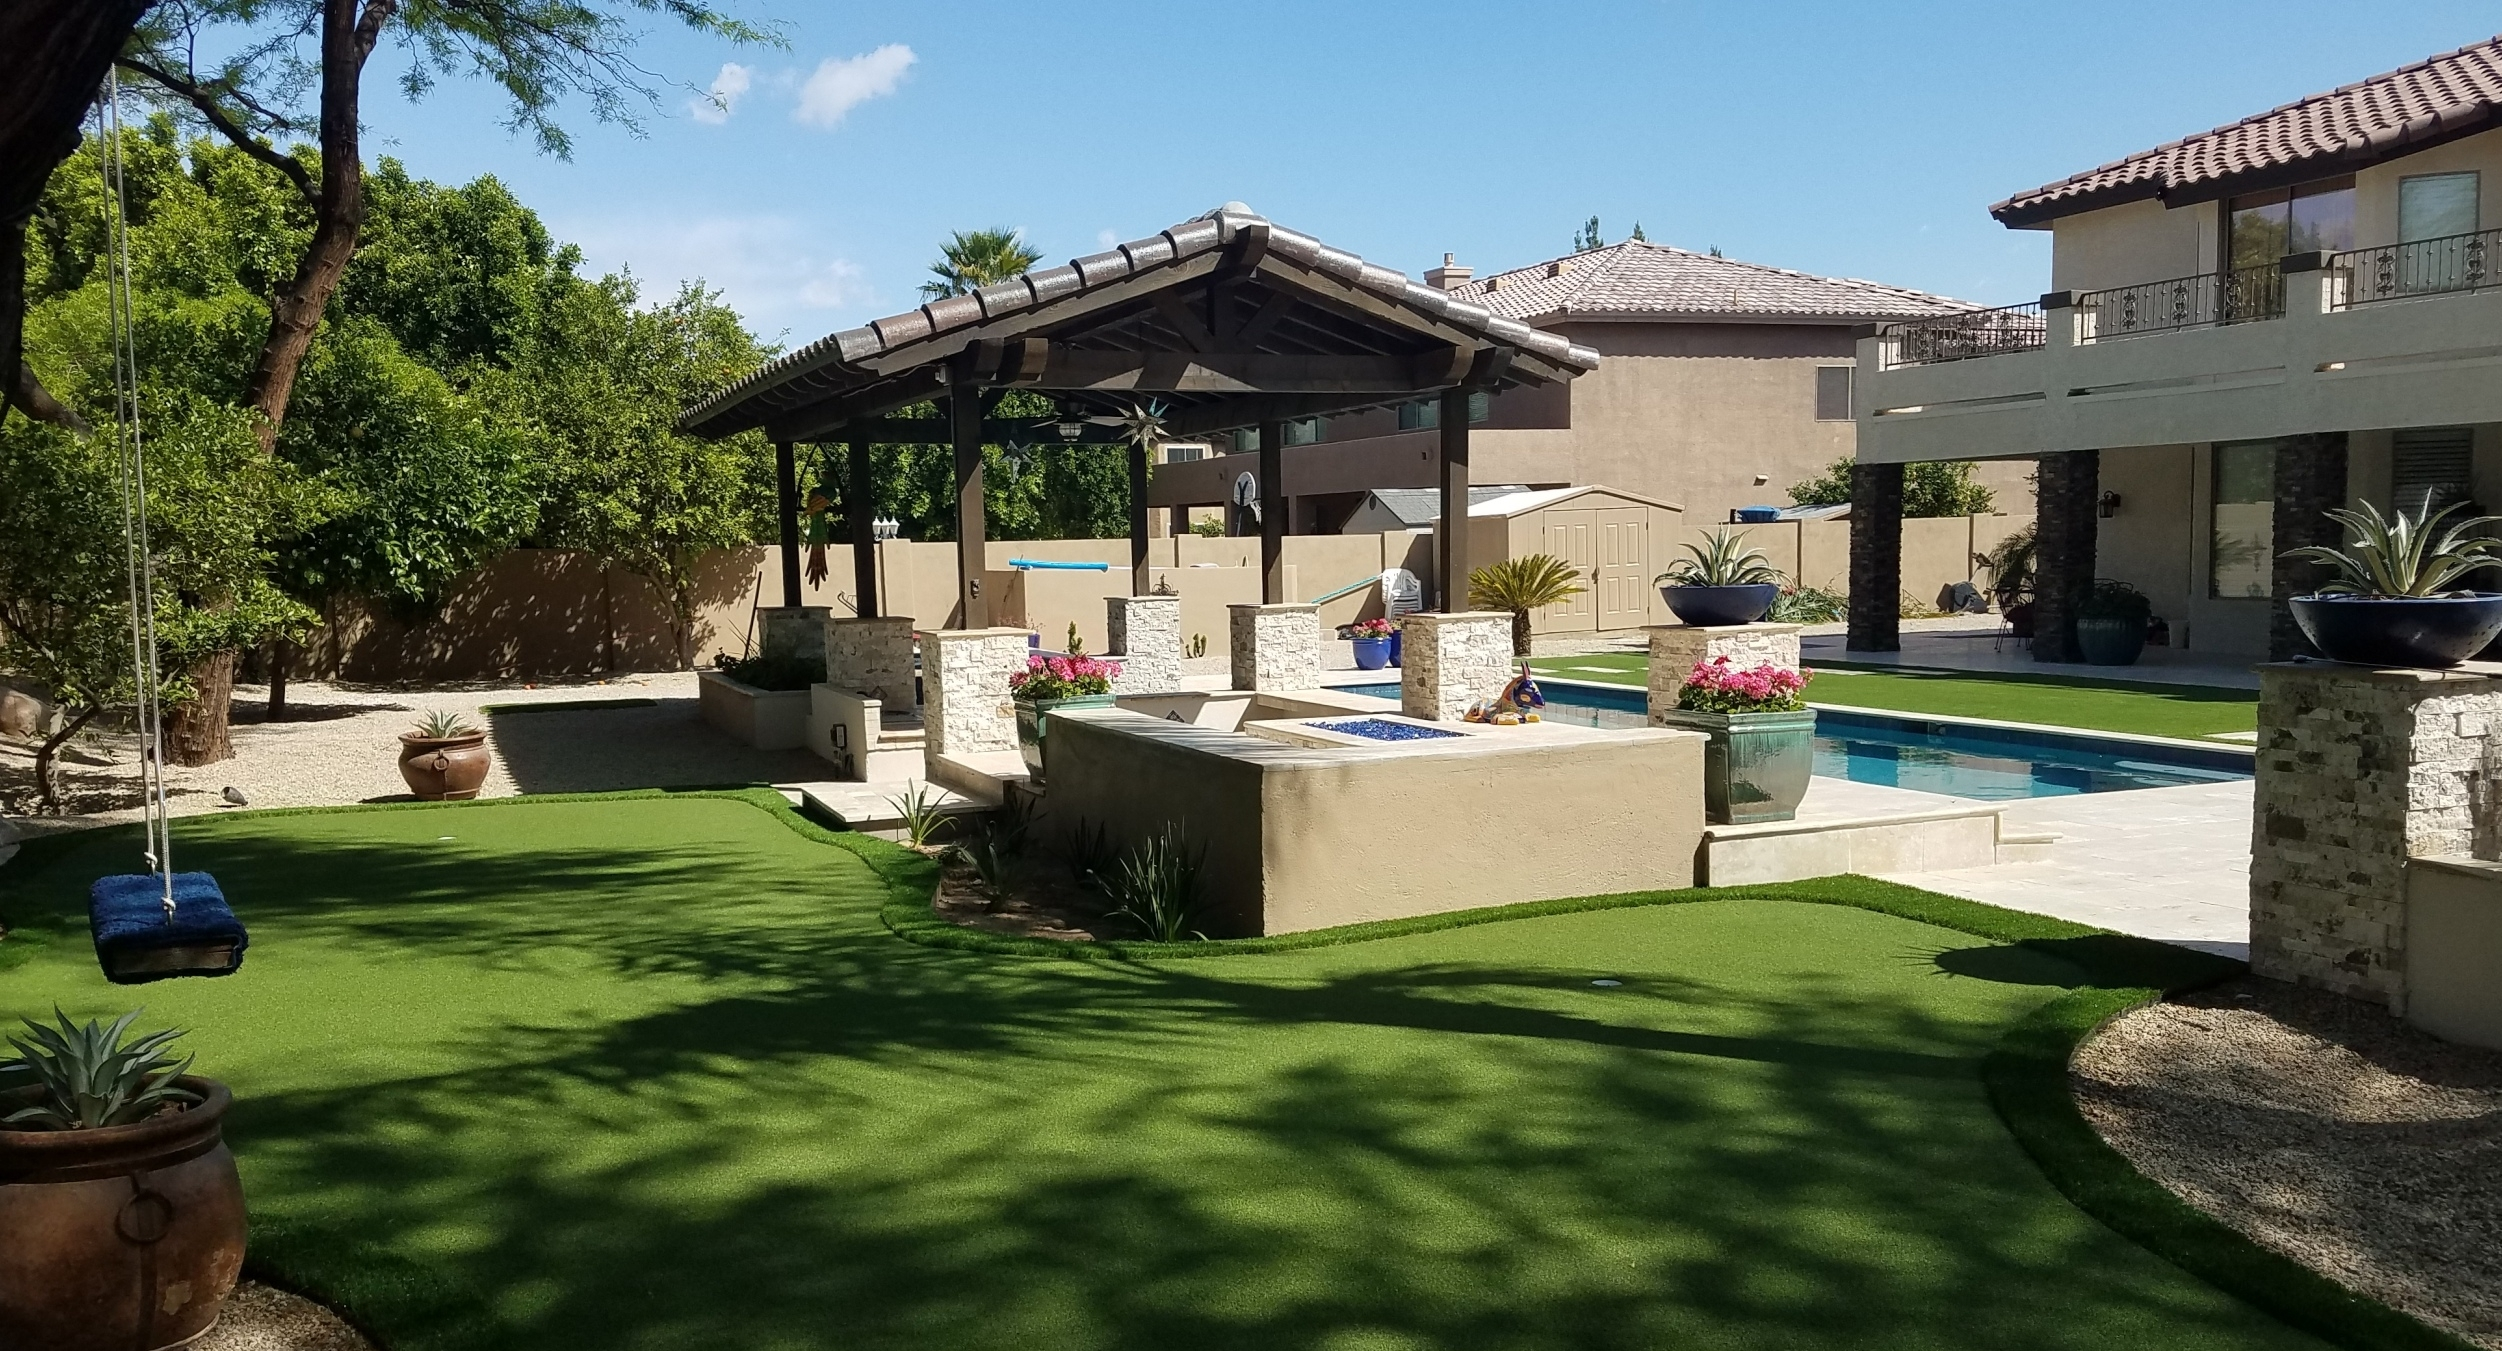 A total backyard remodel took place in the Peoria landscape design. A putting green behind the new swimming pool with a travertine patio that includes two fire pits, and several outdoor living spaces.